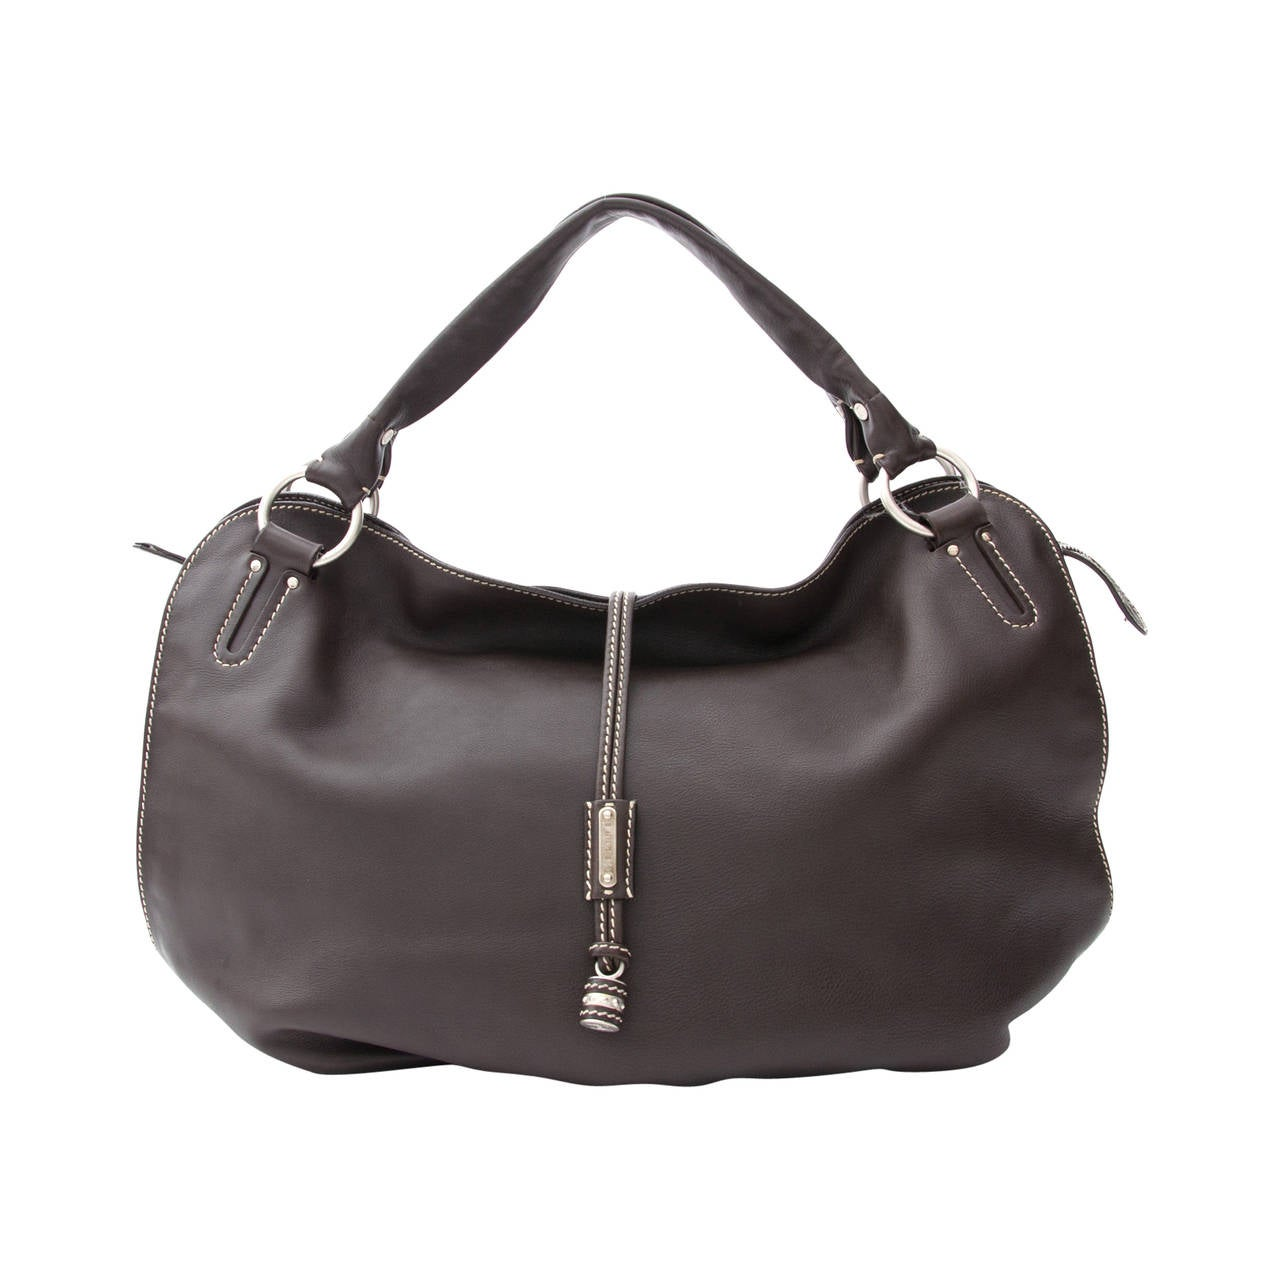 9c5851b6f7fb Celine Bittersweet Dark Brown Large Hobo Bag at 1stdibs